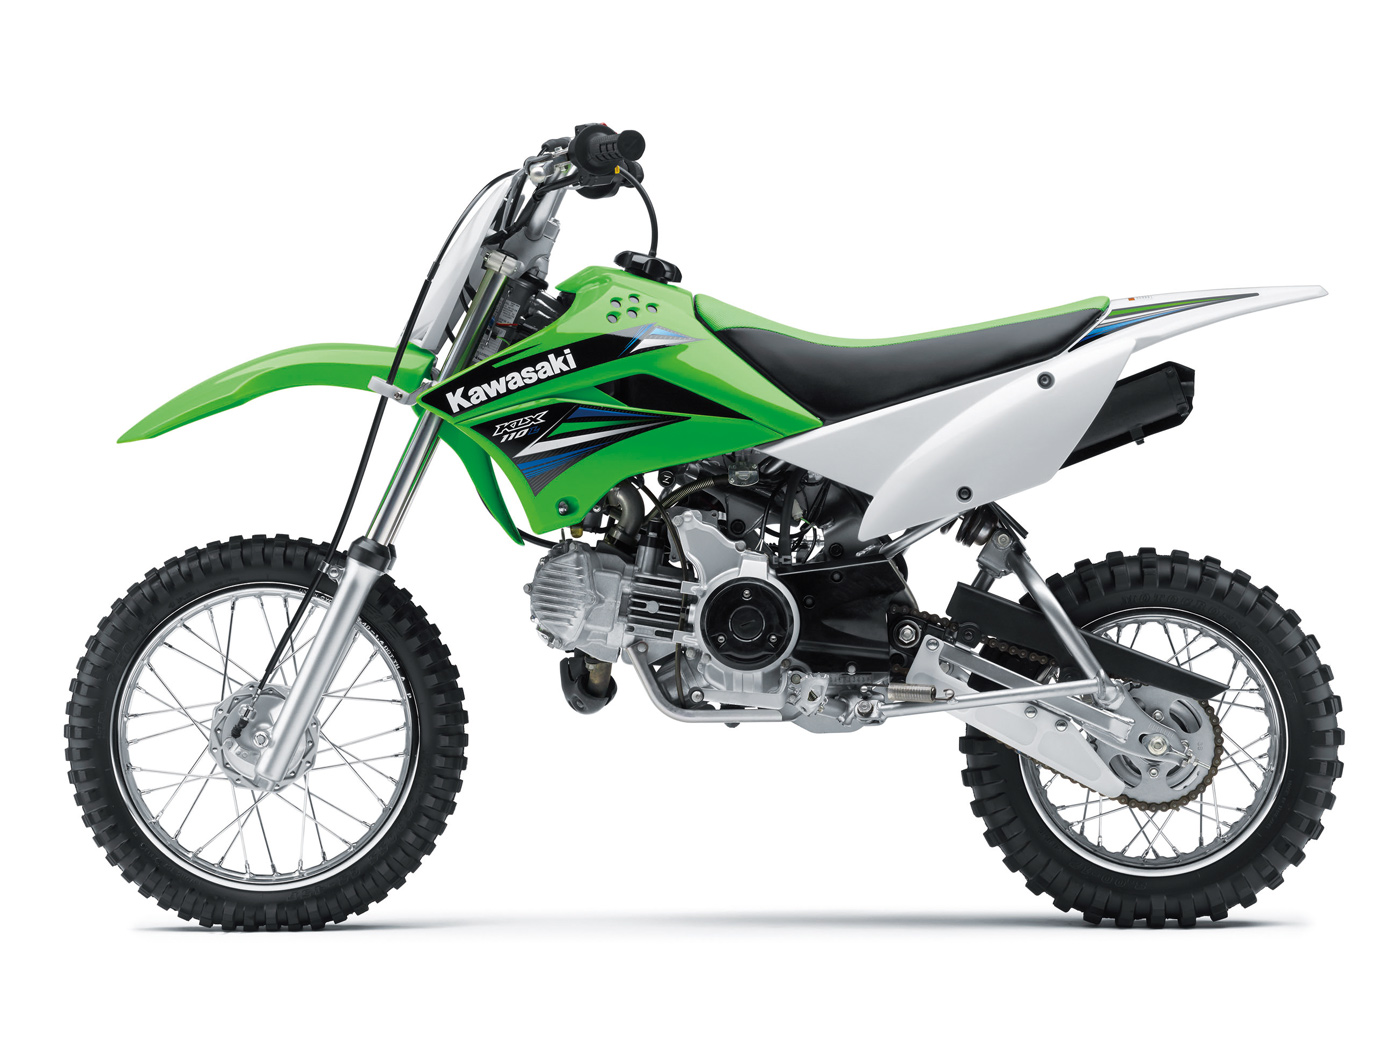 2014 Kx250f Manual Product User Guide Instruction Two Brothers Comp S 2 Into 1 Exhaust System For Yamaha Bolt Kawasaki Klx110l Klx110def On Wheels Owners Shop